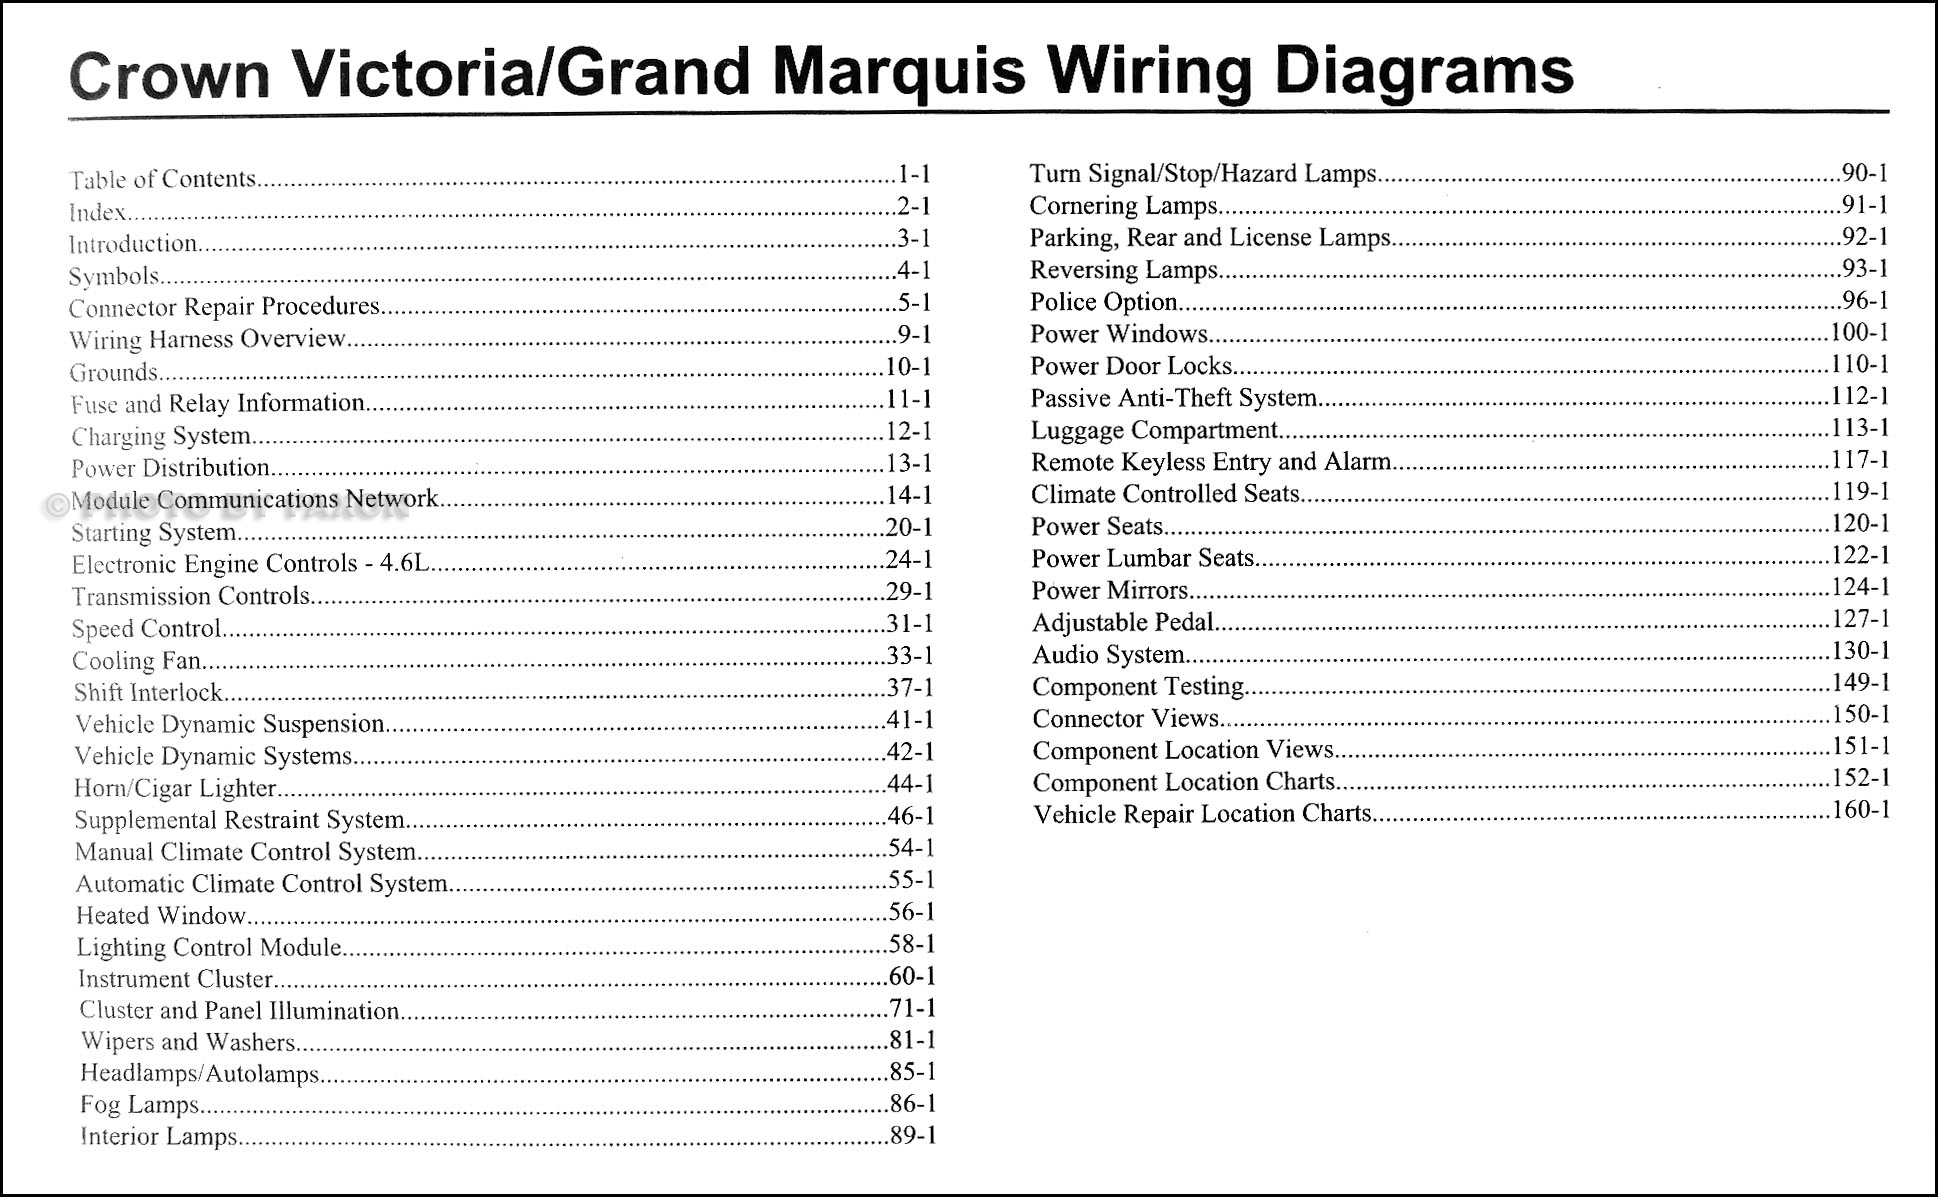 2009FordCrownVictoriaOWD TOC 2009 crown victoria & grand marquis original wiring diagram manual 1997 mercury grand marquis radio wiring harness at gsmx.co